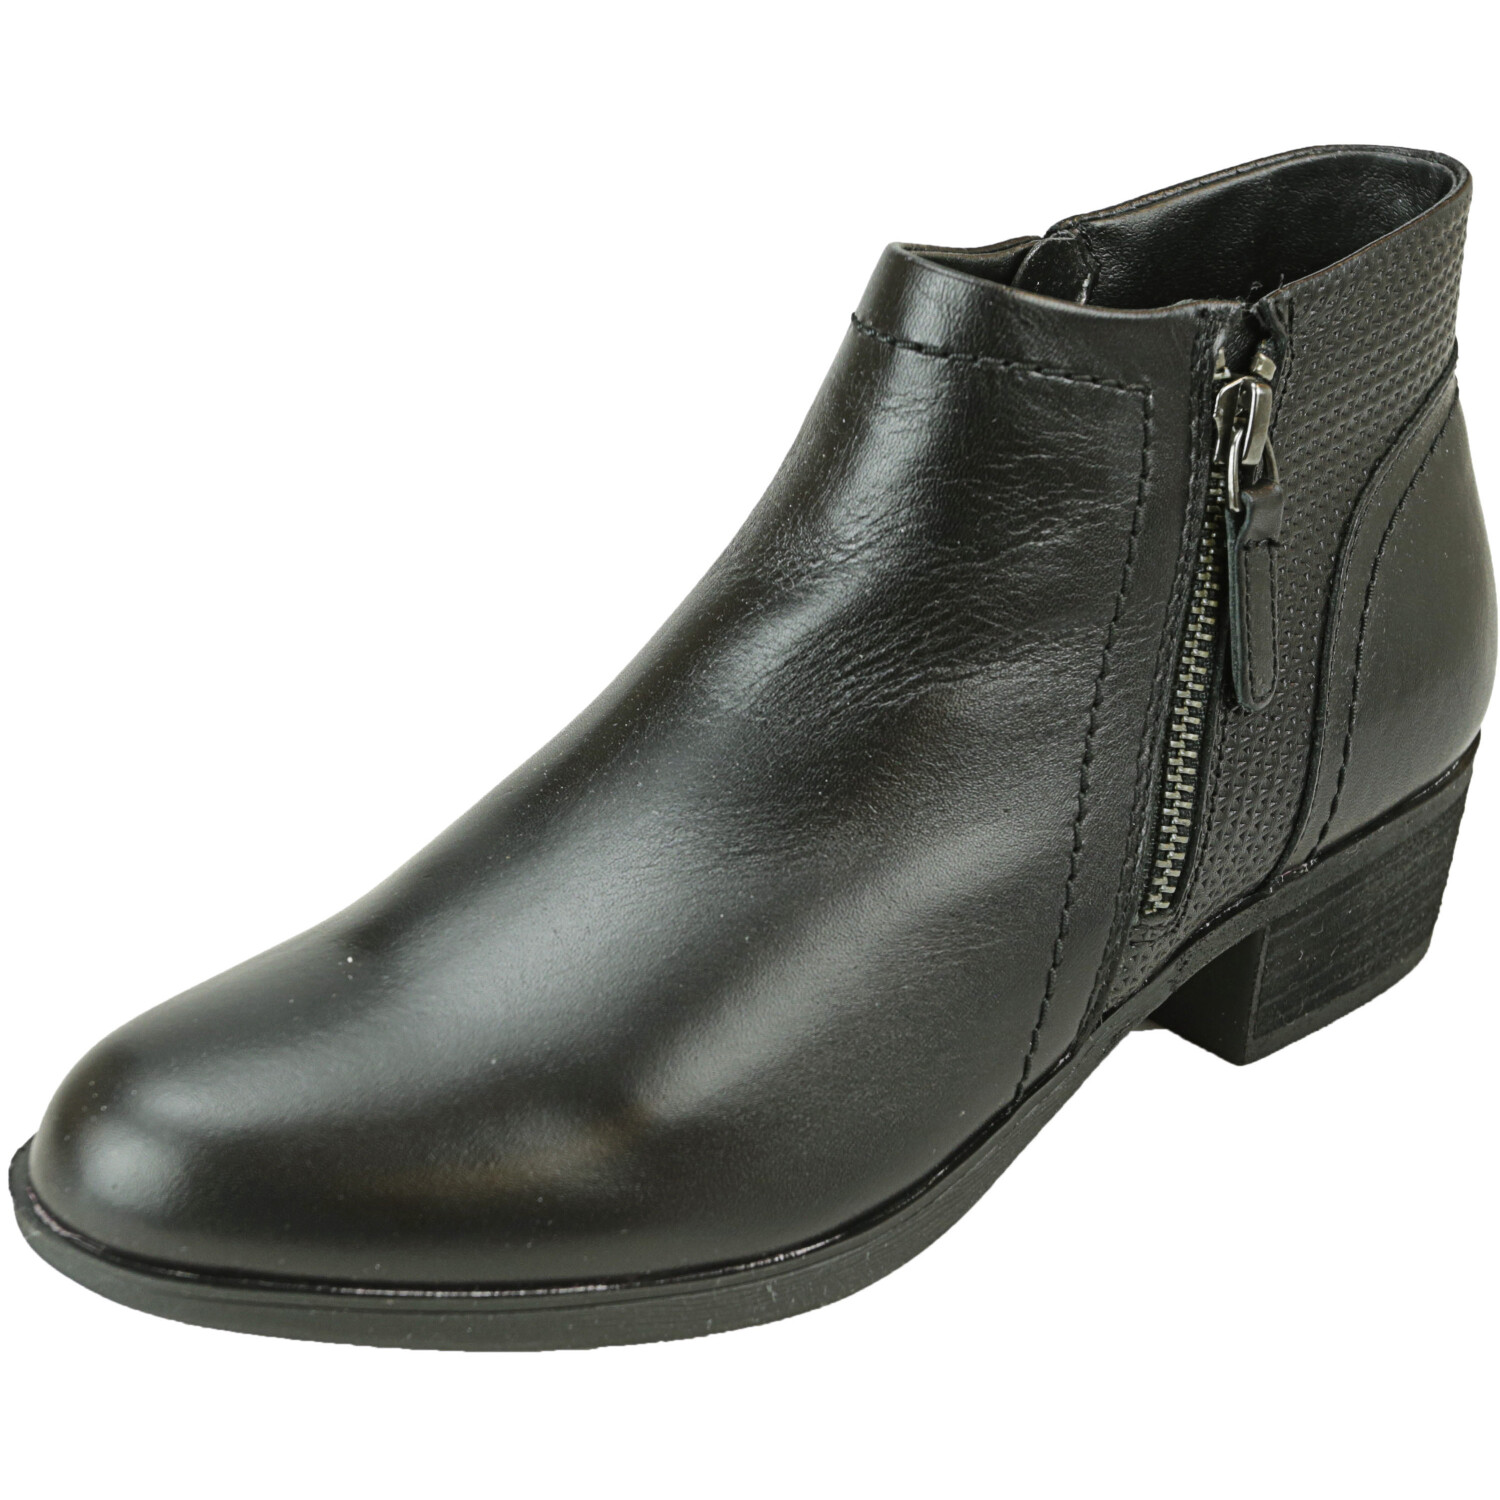 Rockport Women's Cobb Hill Oliana Panel Black Ankle-High Leather Boot - 7M